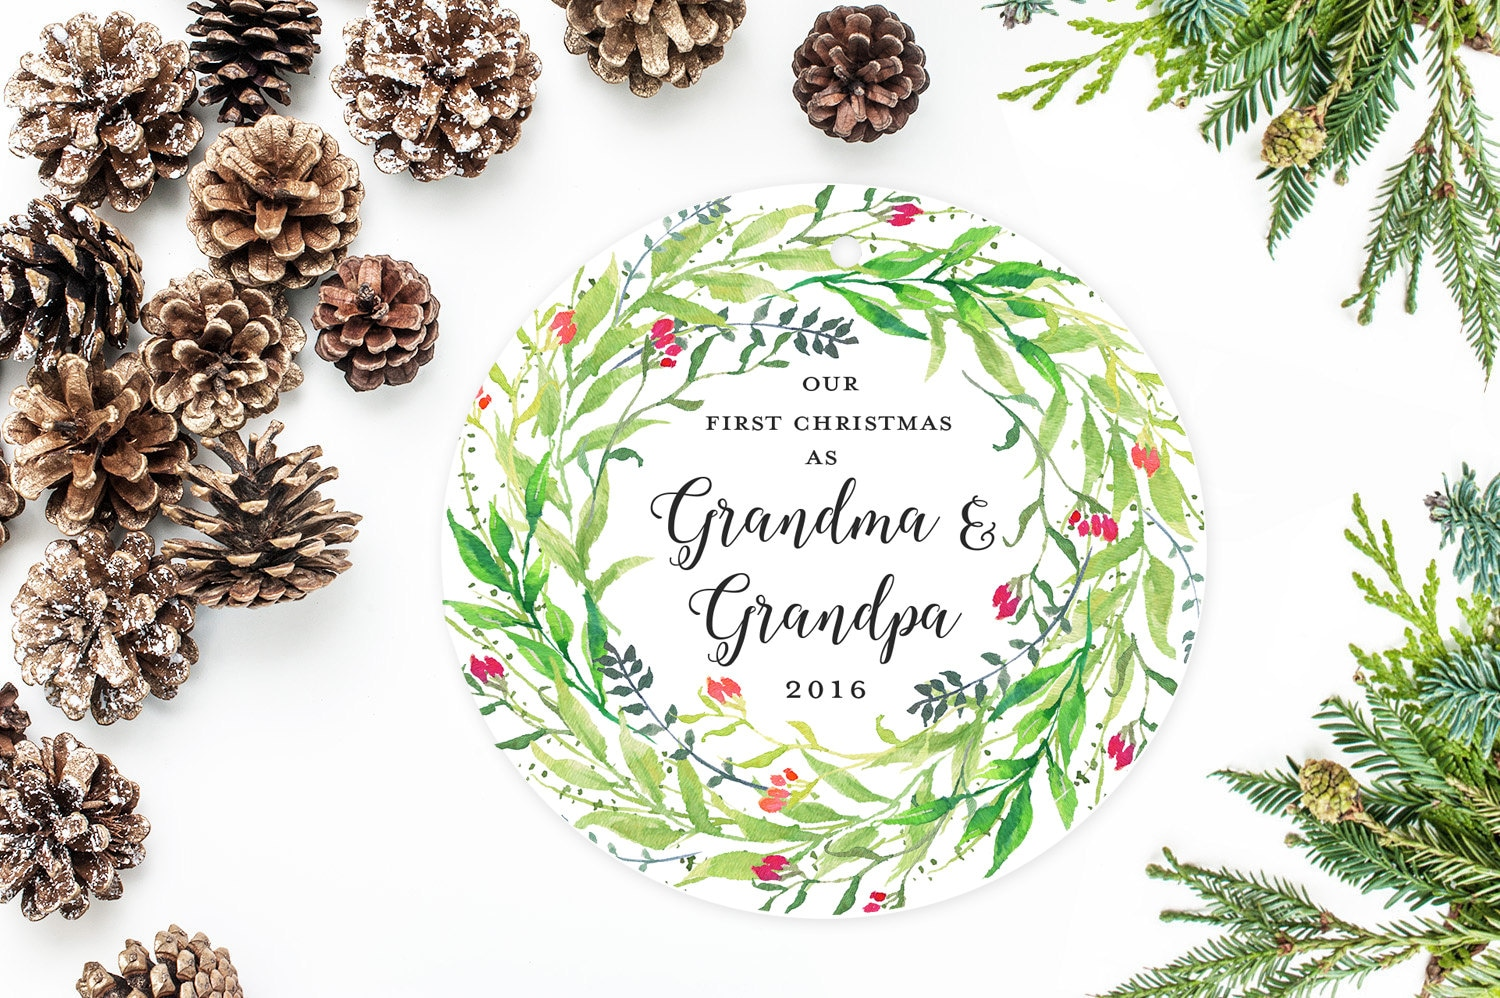 Babys First Christmas Gift Ideas For Grandparents : Baby s first christmas gift ideas for grandparents